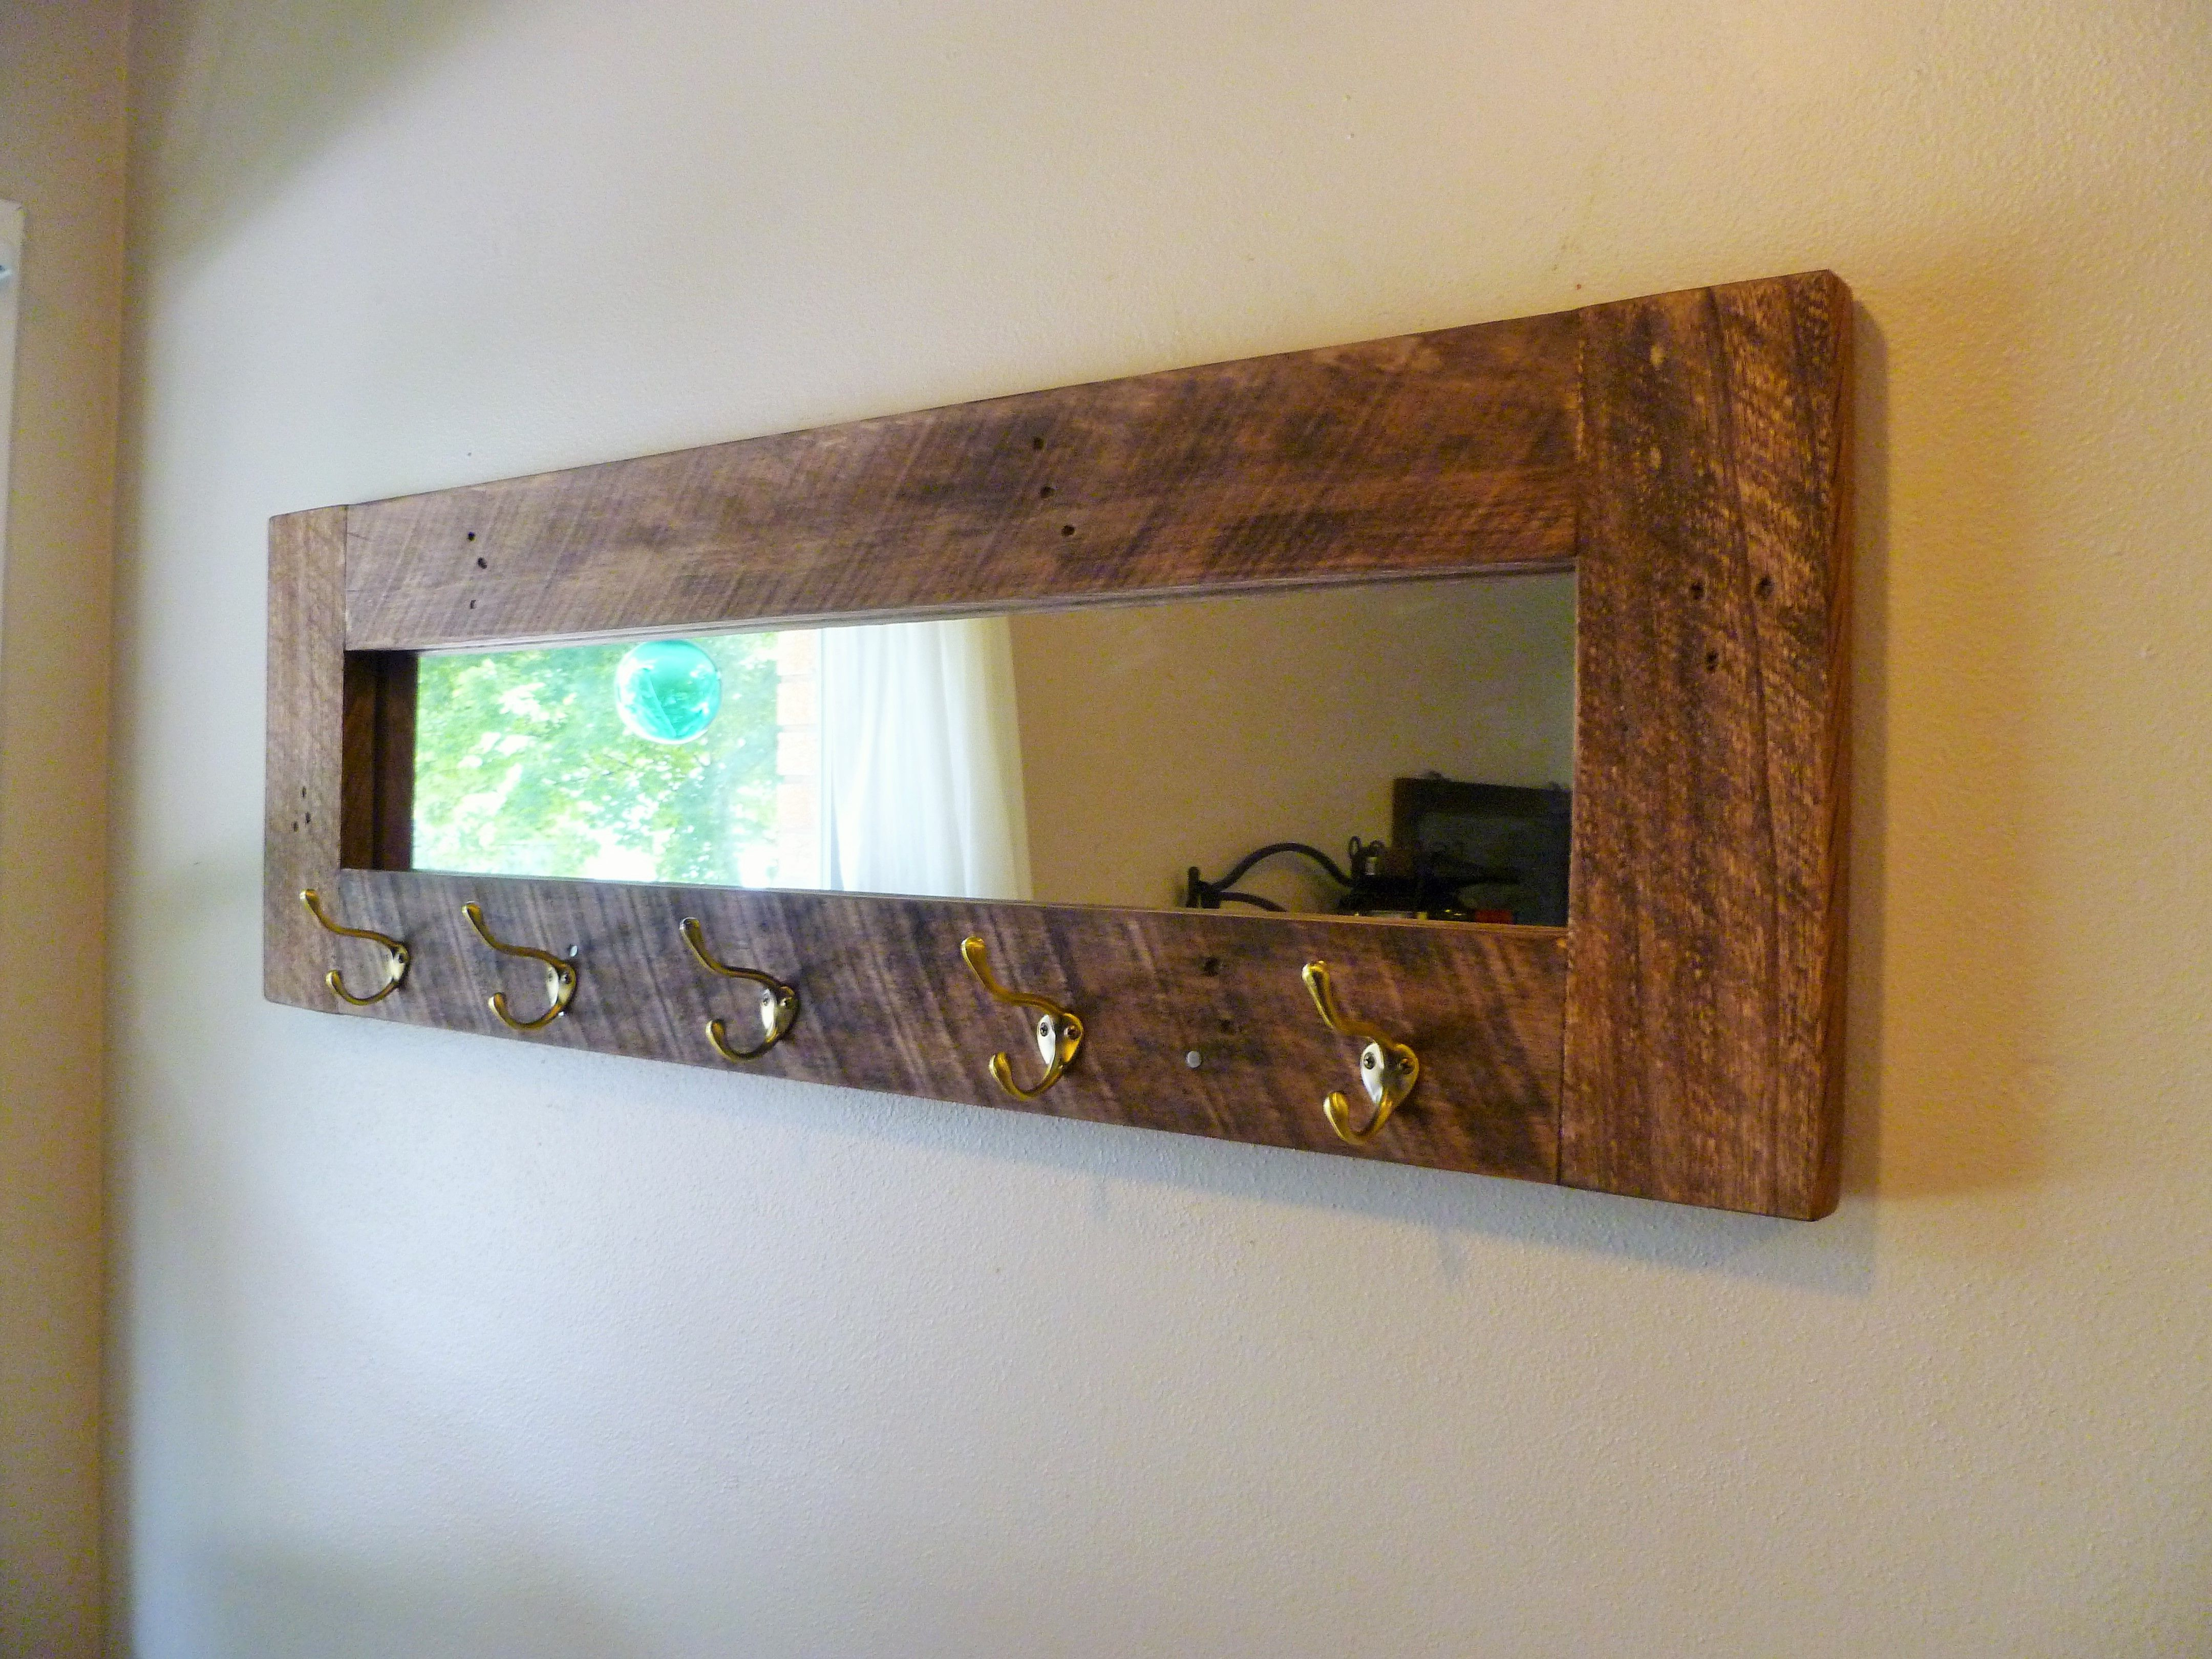 Most Current West Elm Entryway Mirror With Hooks And Shelf Coat Rack Wall Antique Inside Wall Mirror With Coat Hooks (View 3 of 20)